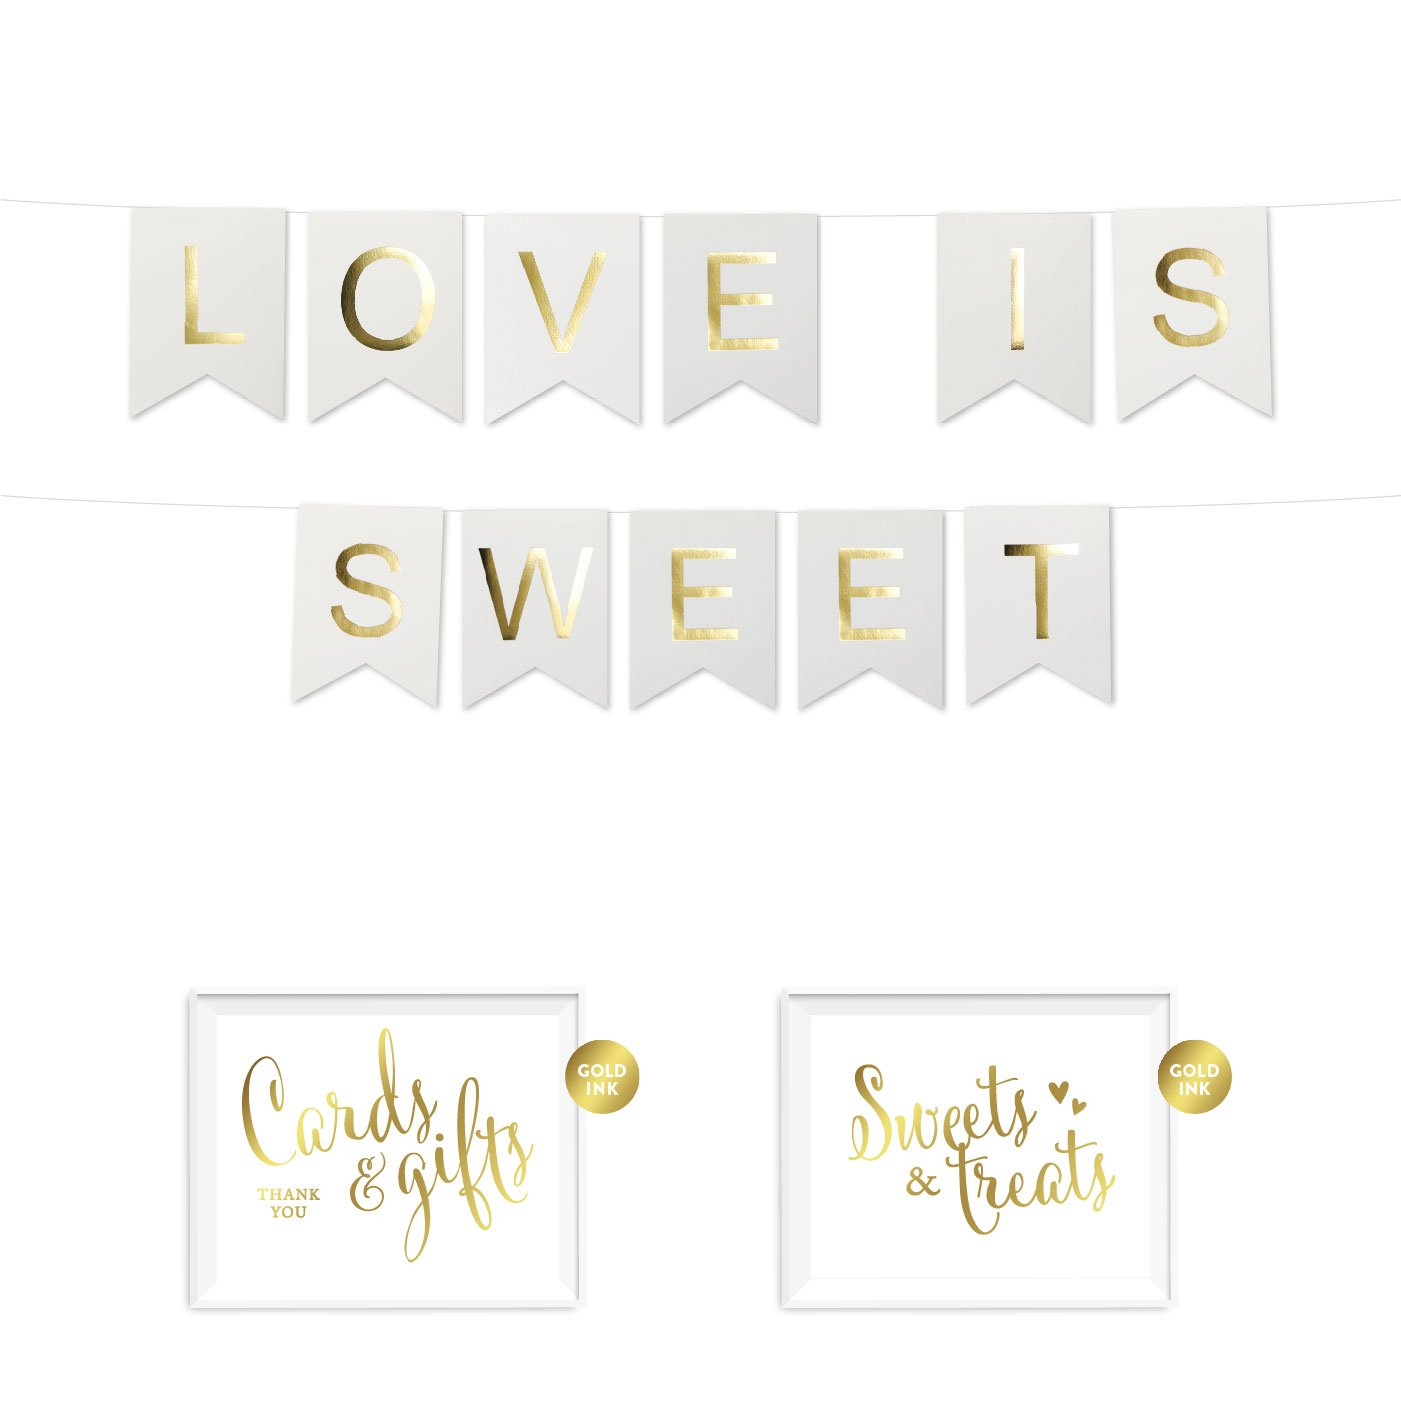 Andaz Press Shiny Gold Foil Paper Pennant Hanging Dessert Table Banner with Gold Party Signs, Love is Sweet White, Pre-Strung, No Assembly Required, 1-Set